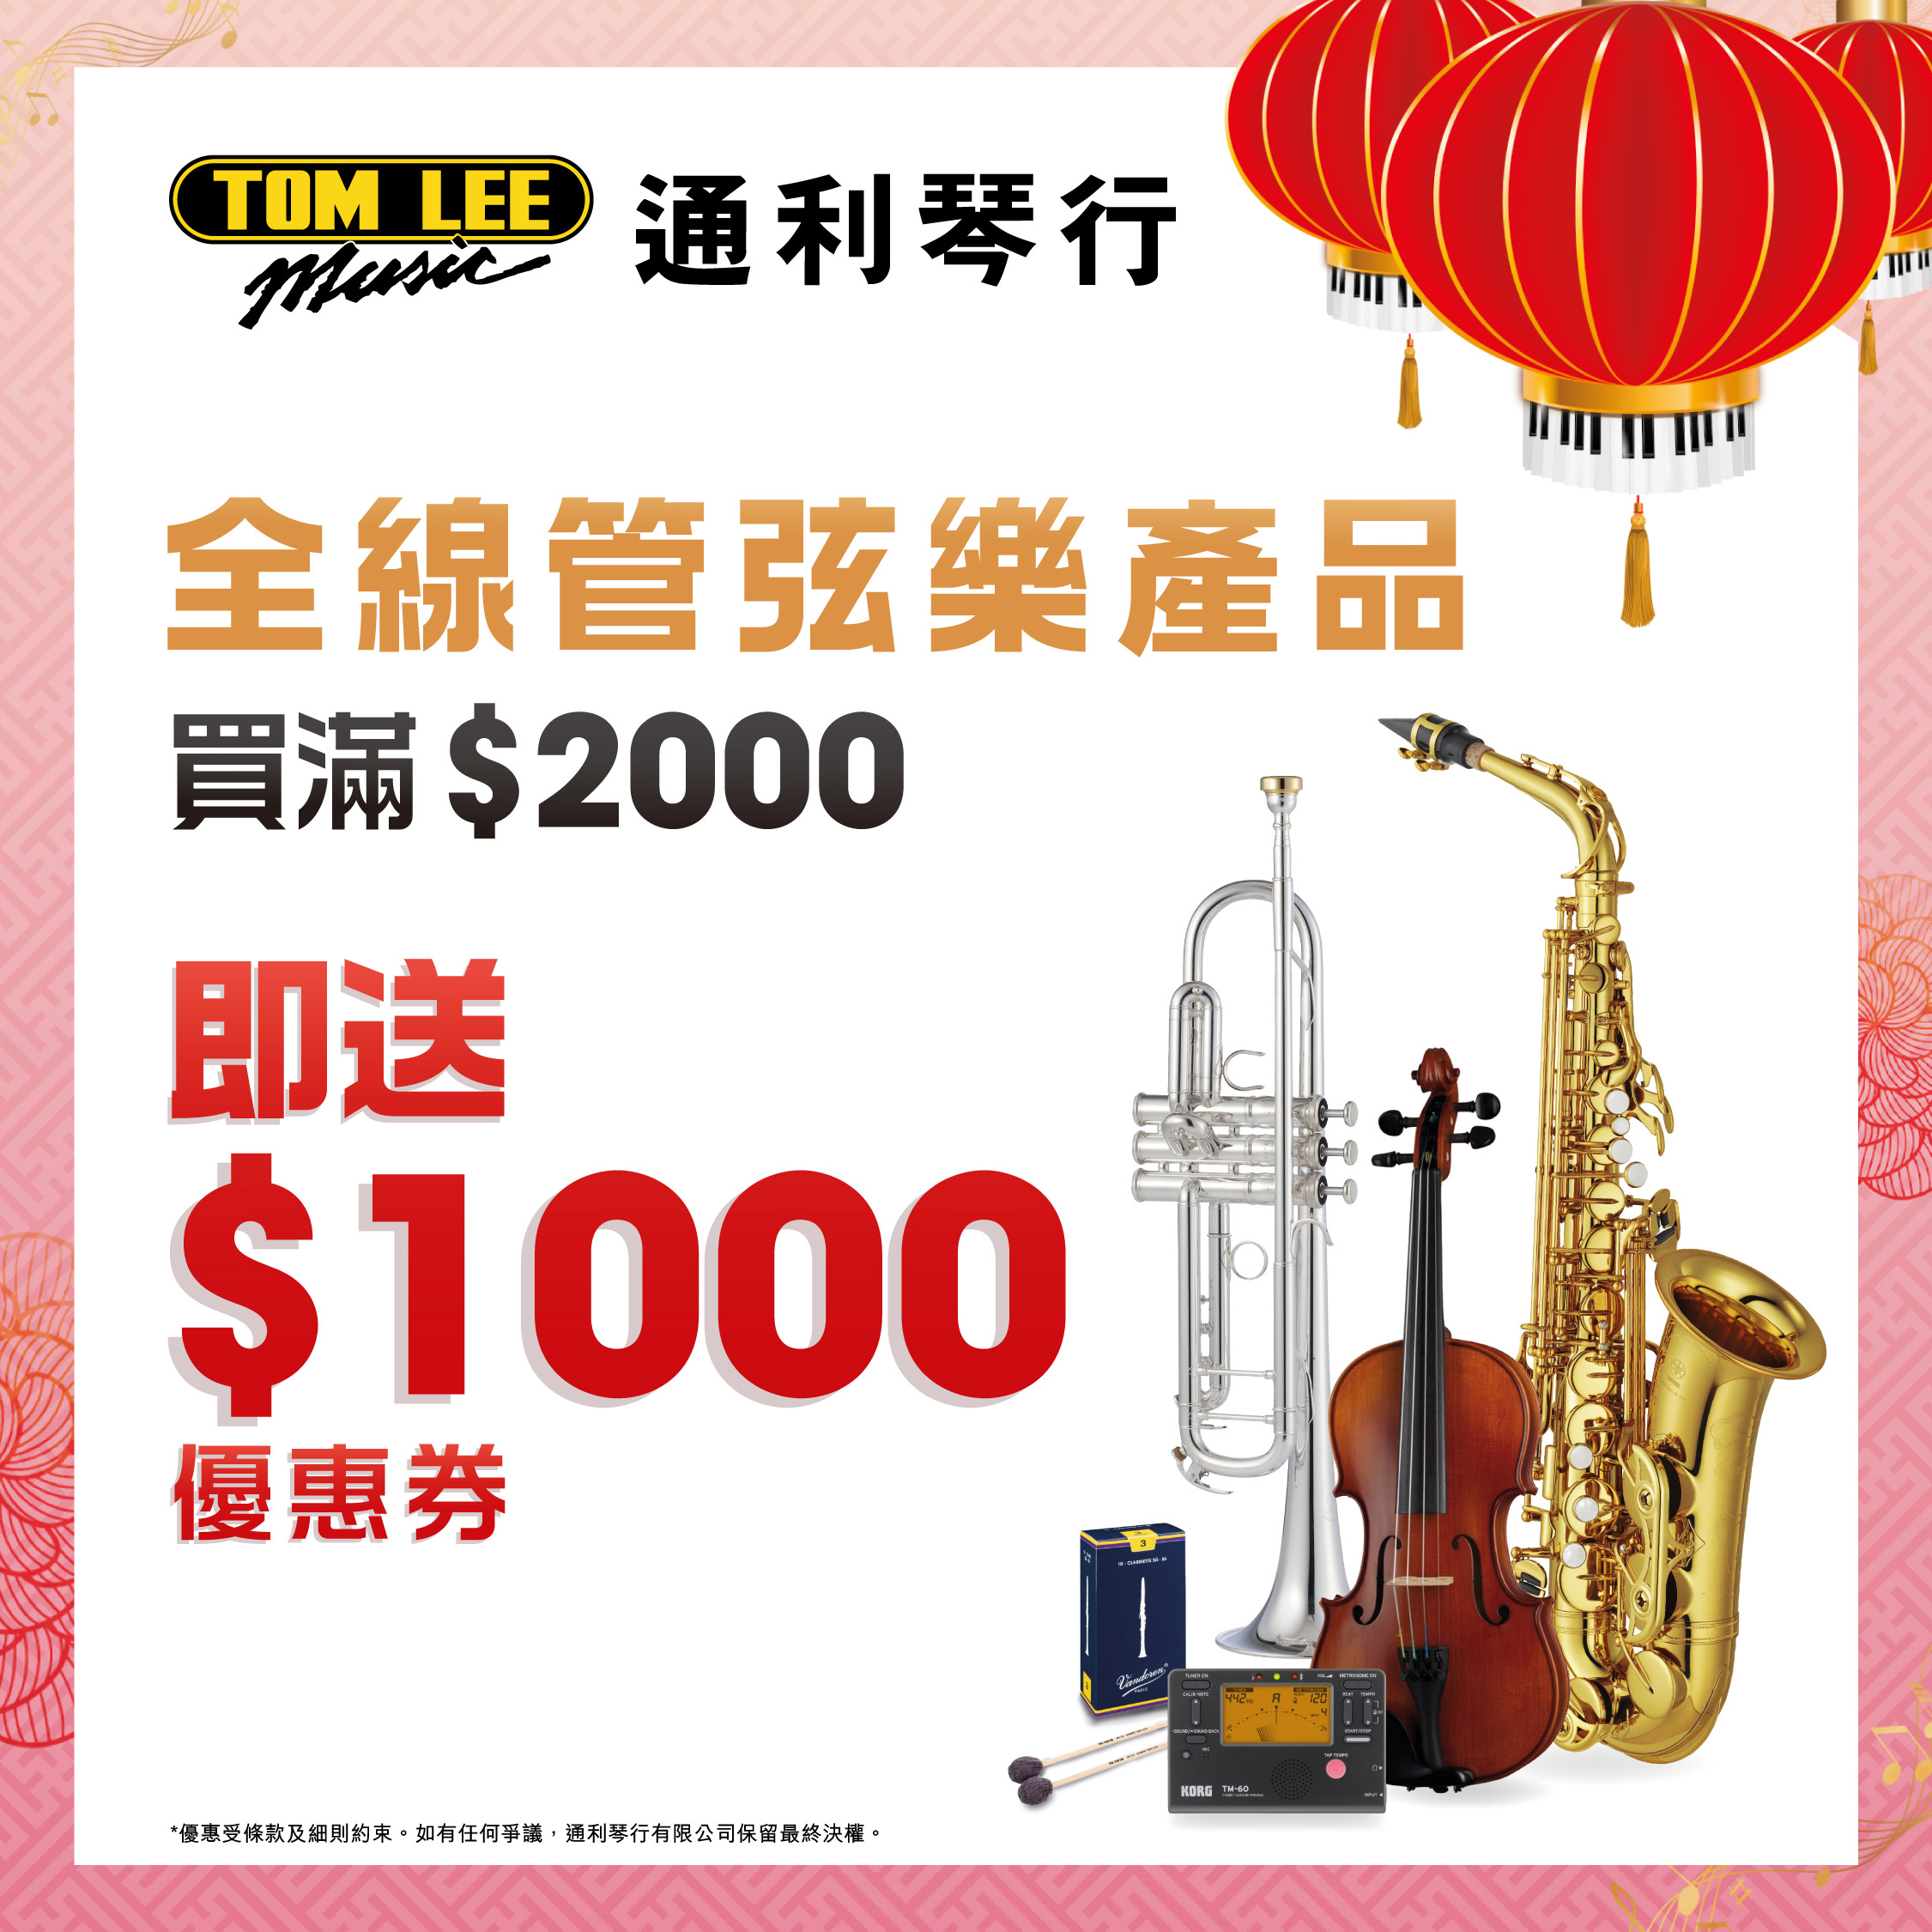 Tom Lee Orchestral Instrument Coupon